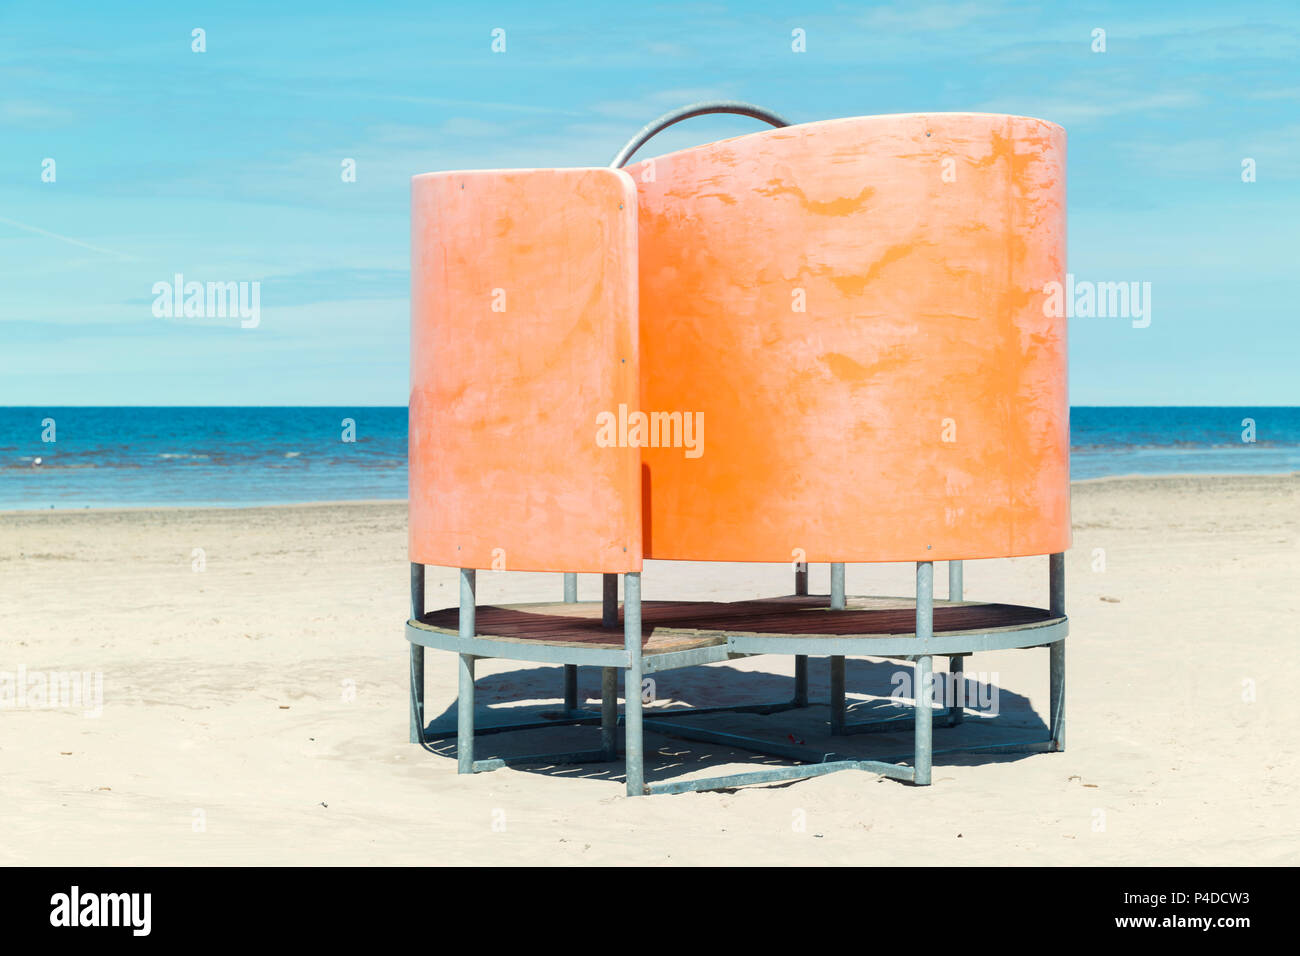 Dressing cabin on the beach. Beach-style changing room - Stock Image